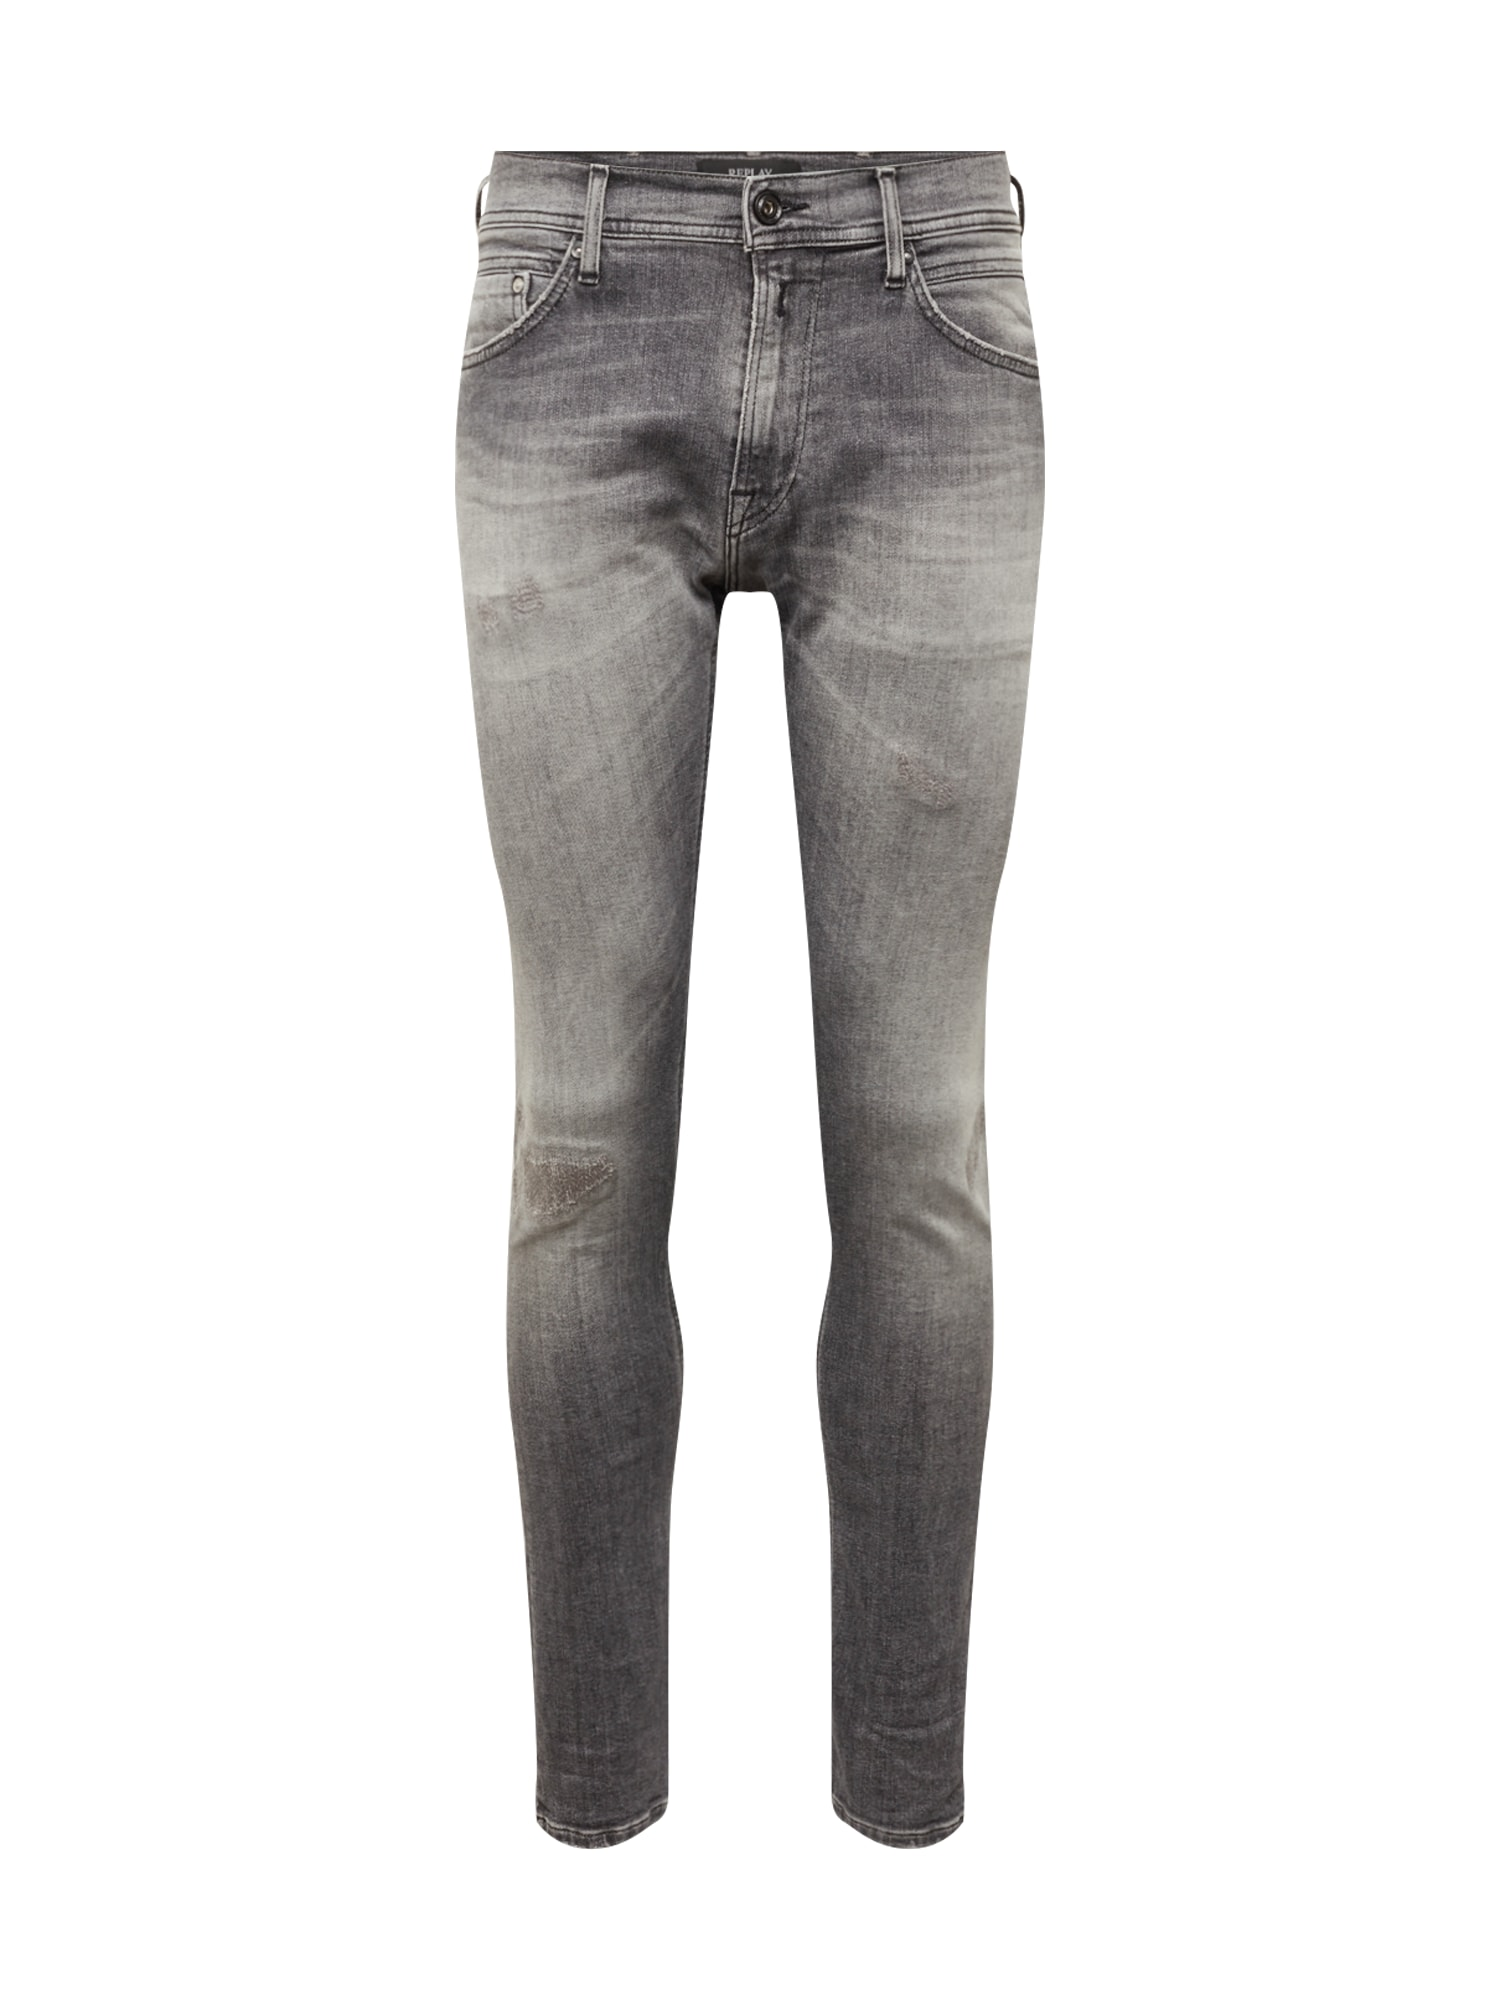 REPLAY Jeans 'Jondrill'  denim gri